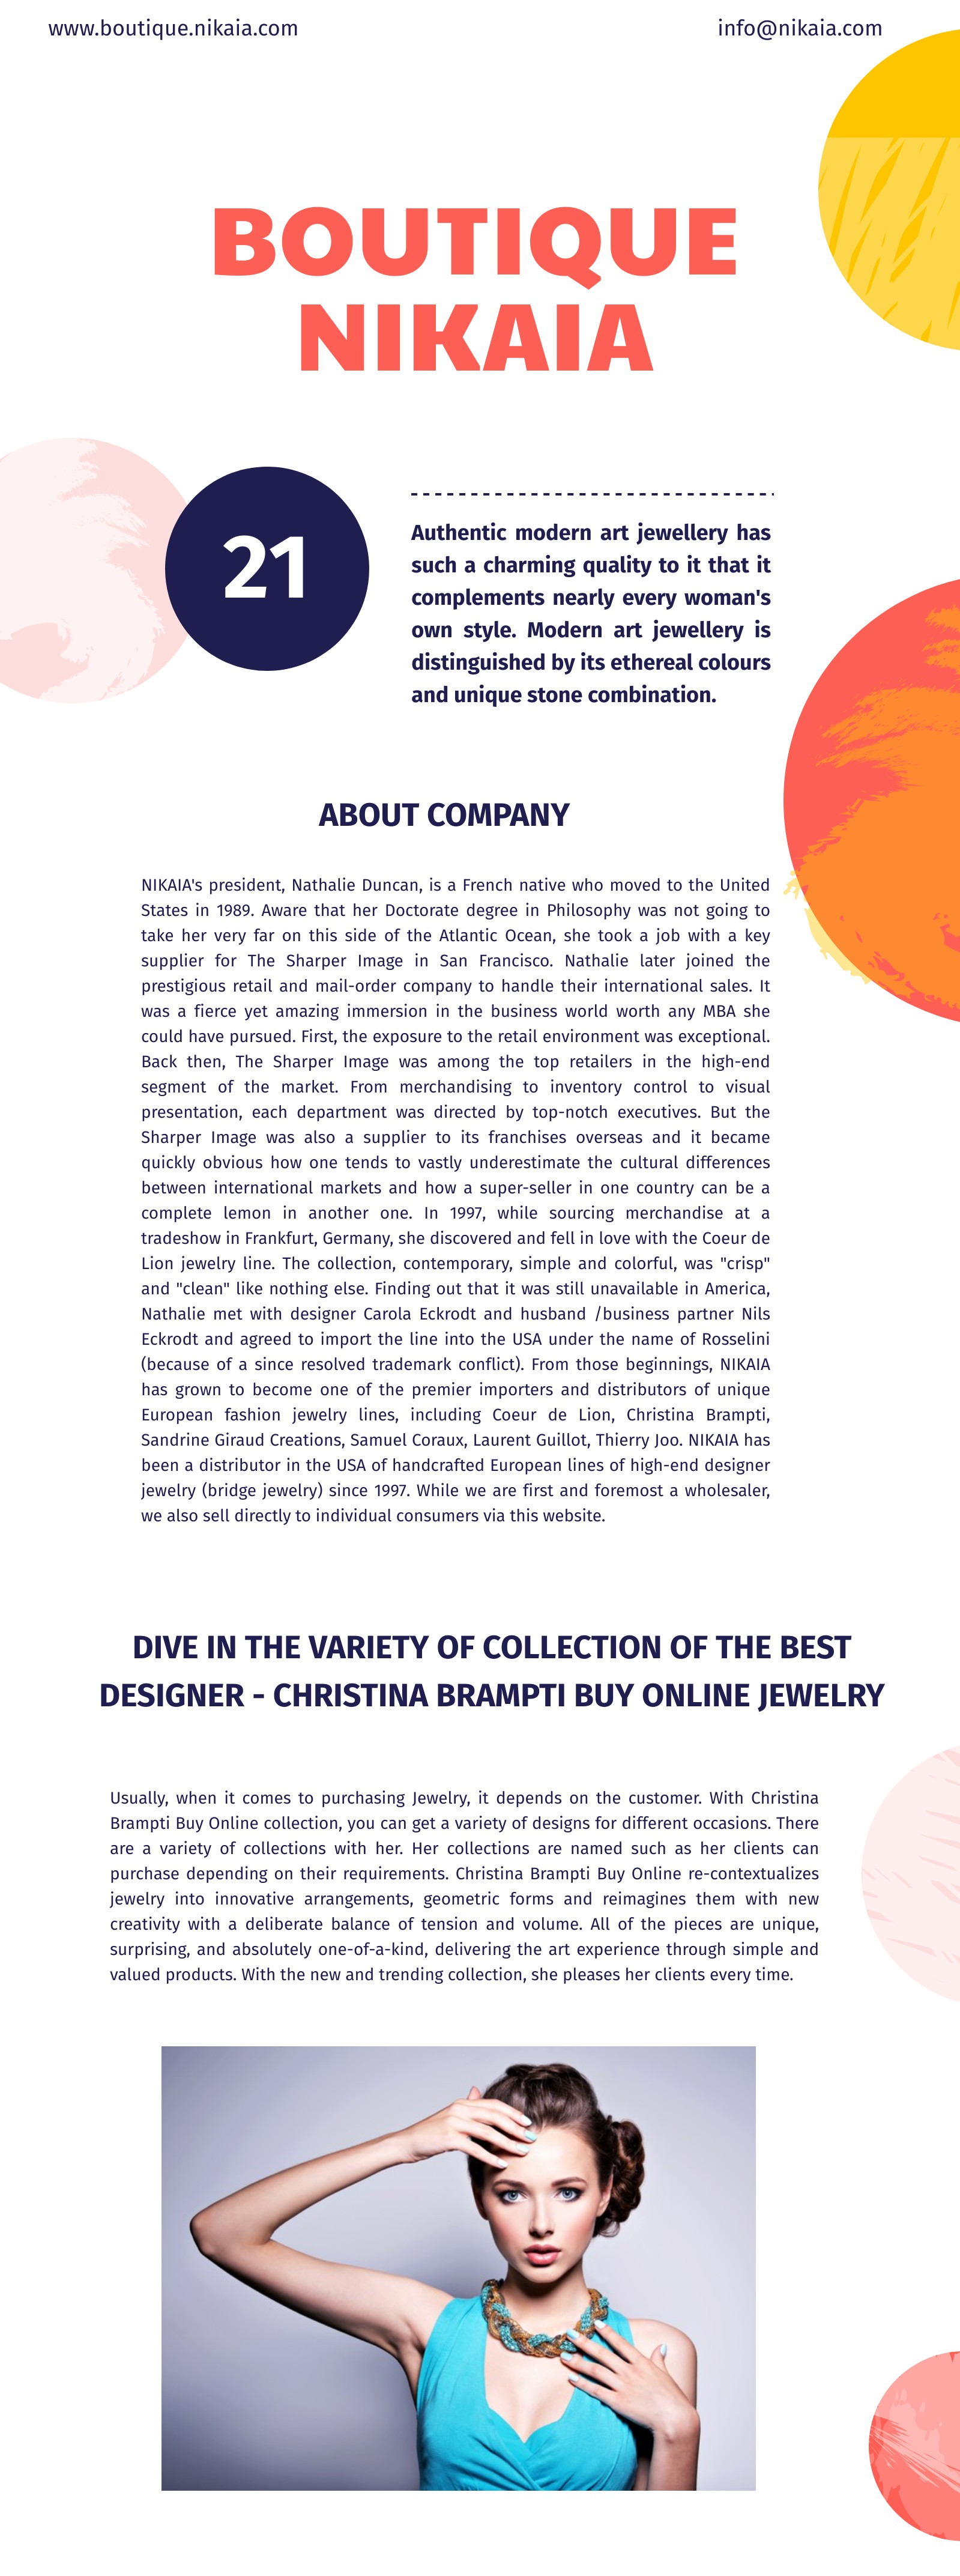 With inspirationally designed collections, grace yourself with Christina Brampti Jewelry: